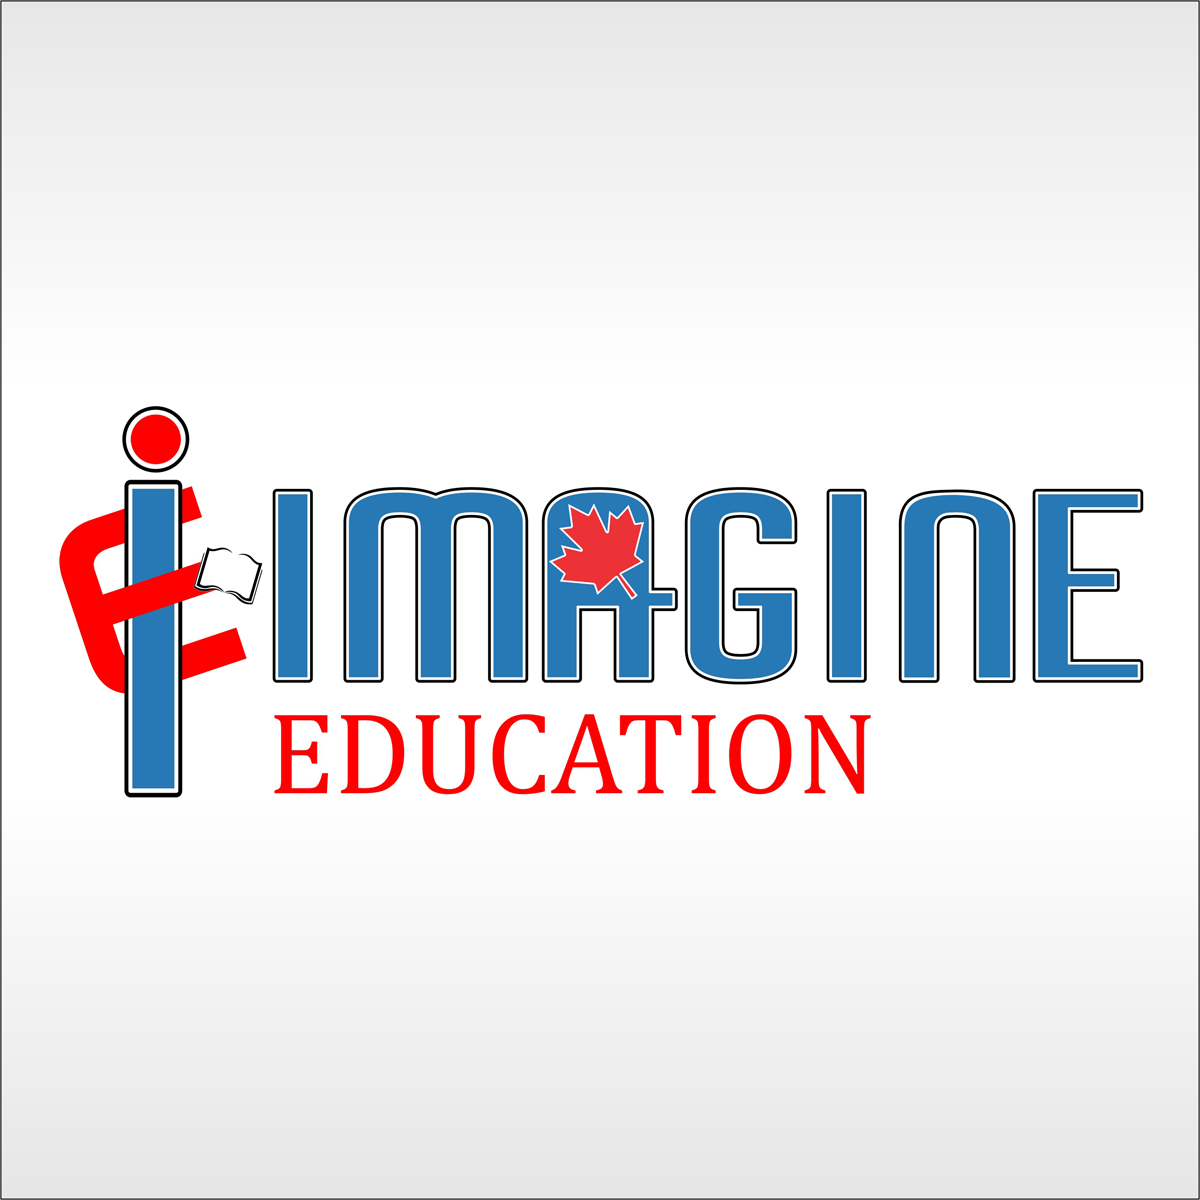 Logo Design by martinz - Entry No. 13 in the Logo Design Contest Imagine Education.